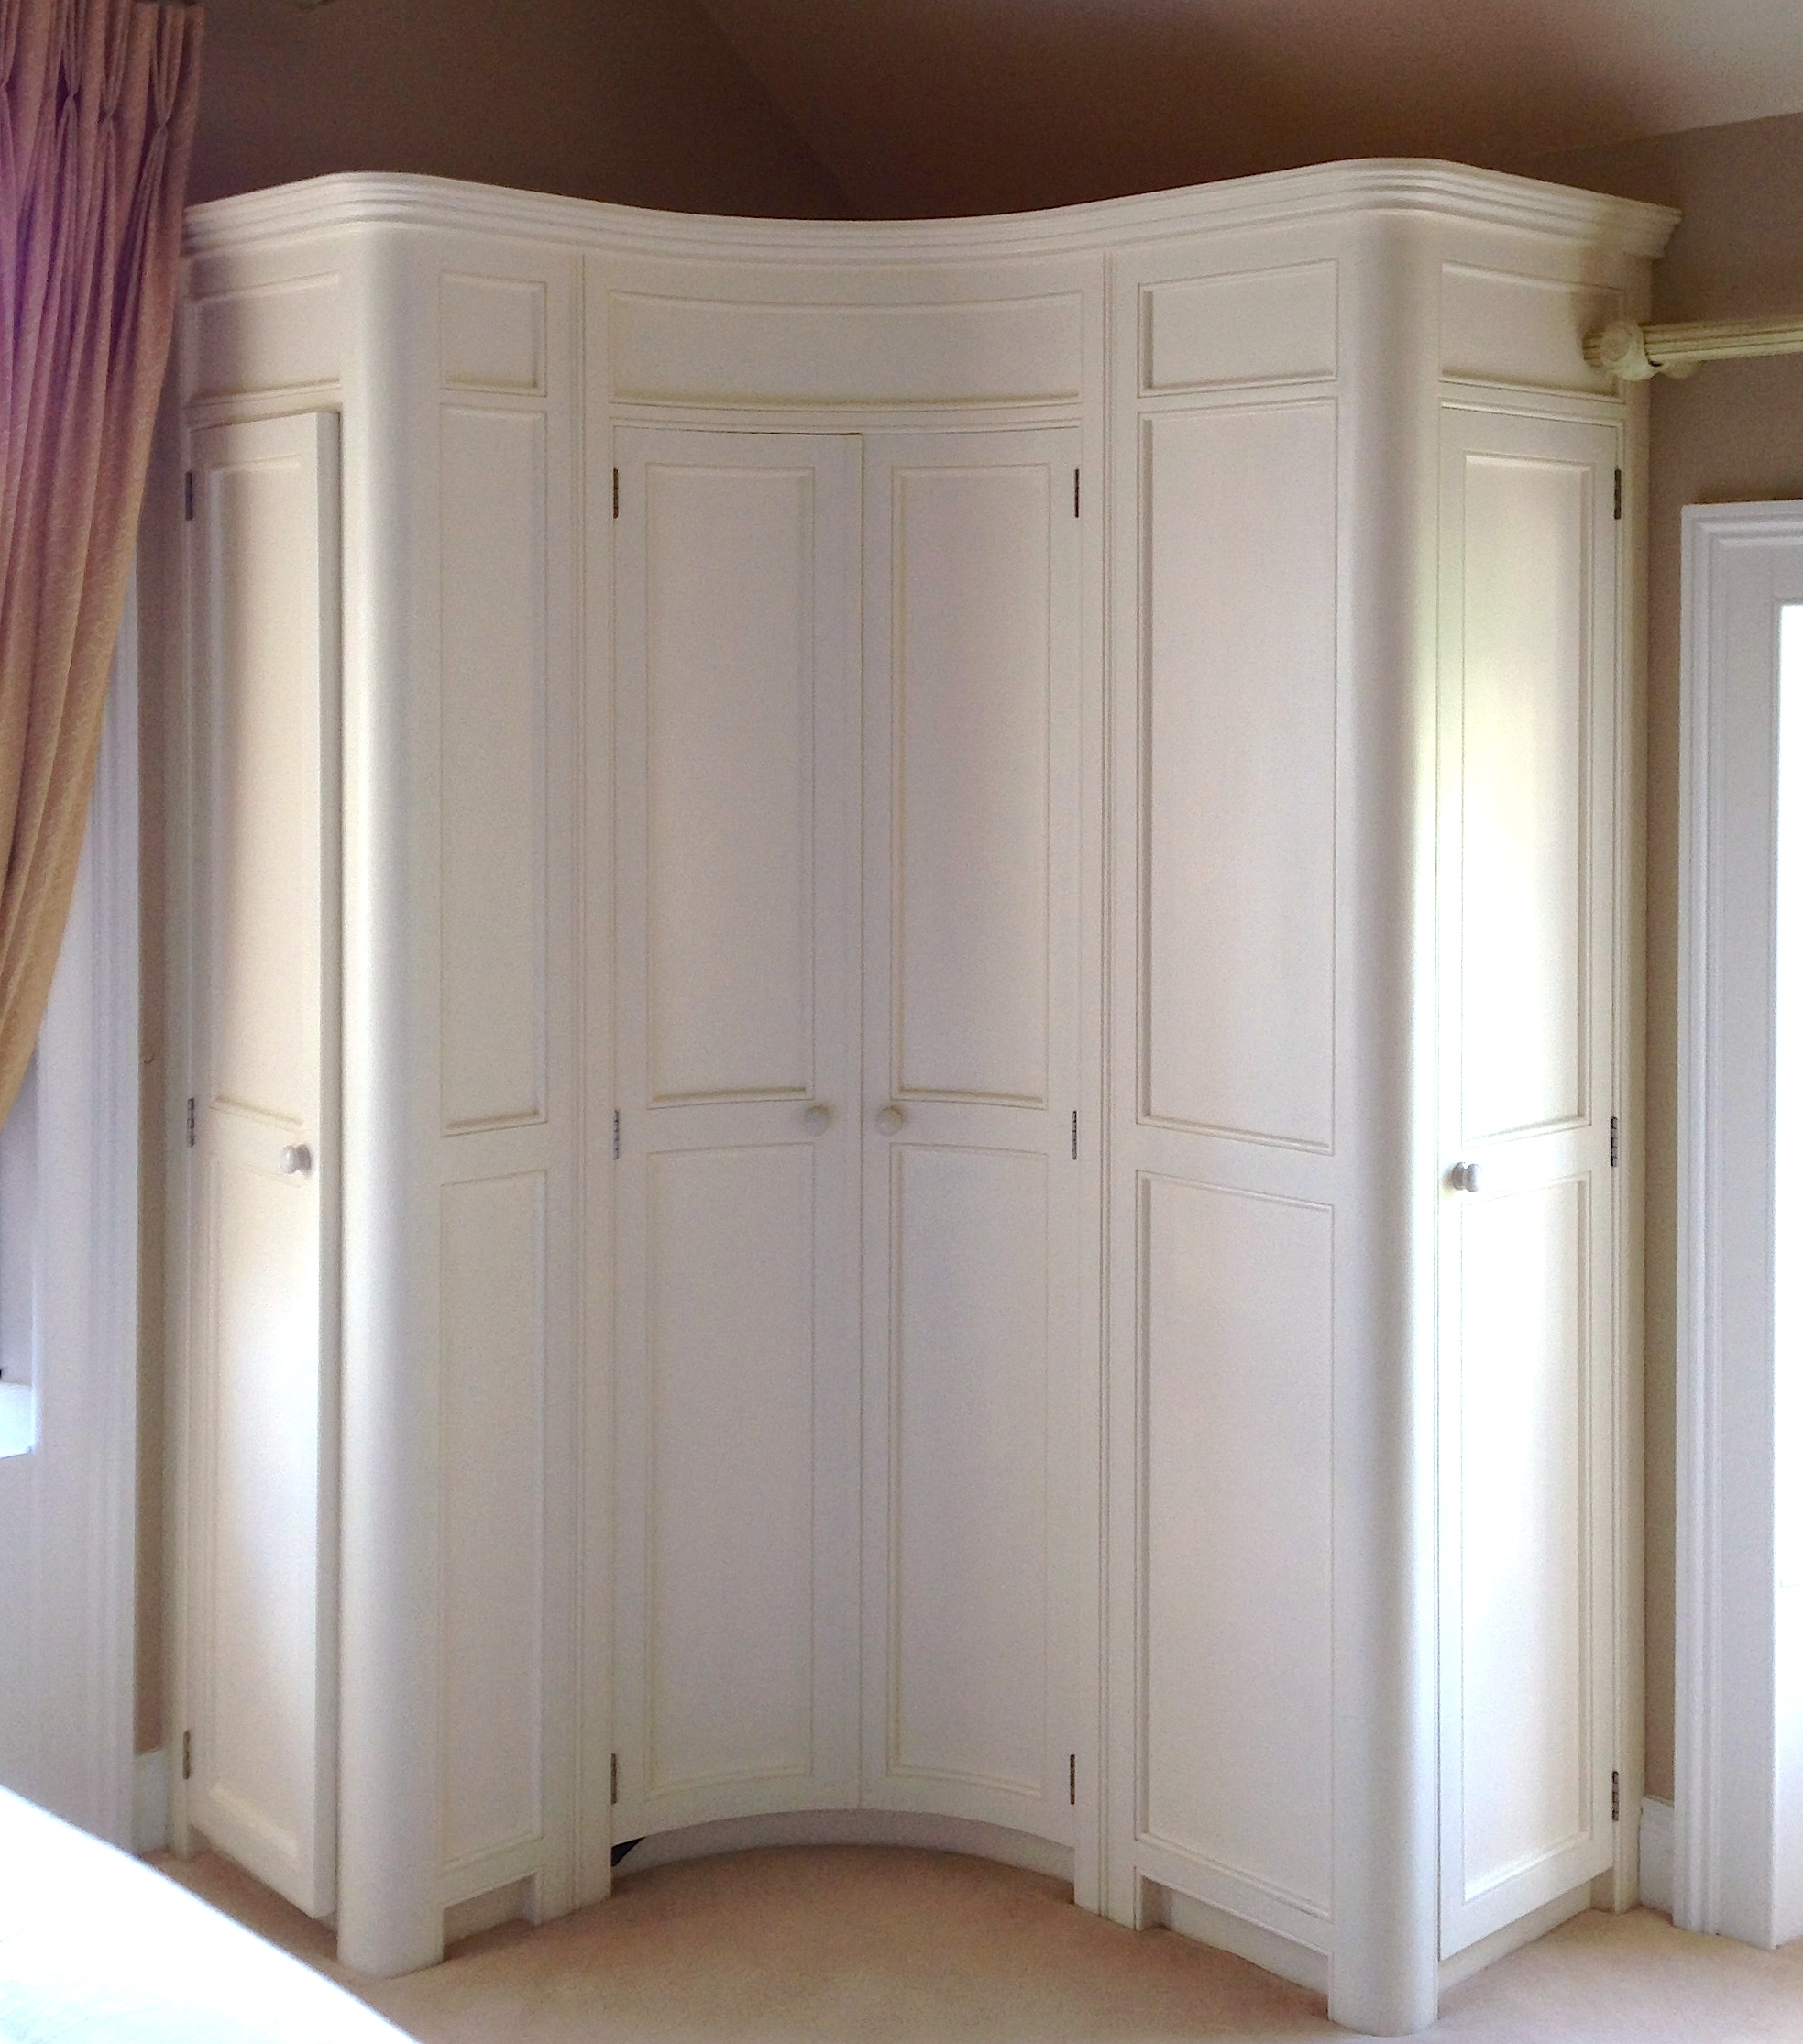 Curved Wardrobes Doors Regarding Well Known Znalezione Obrazy Dla Zapytania Corner Wardrobe Ikea (View 3 of 15)